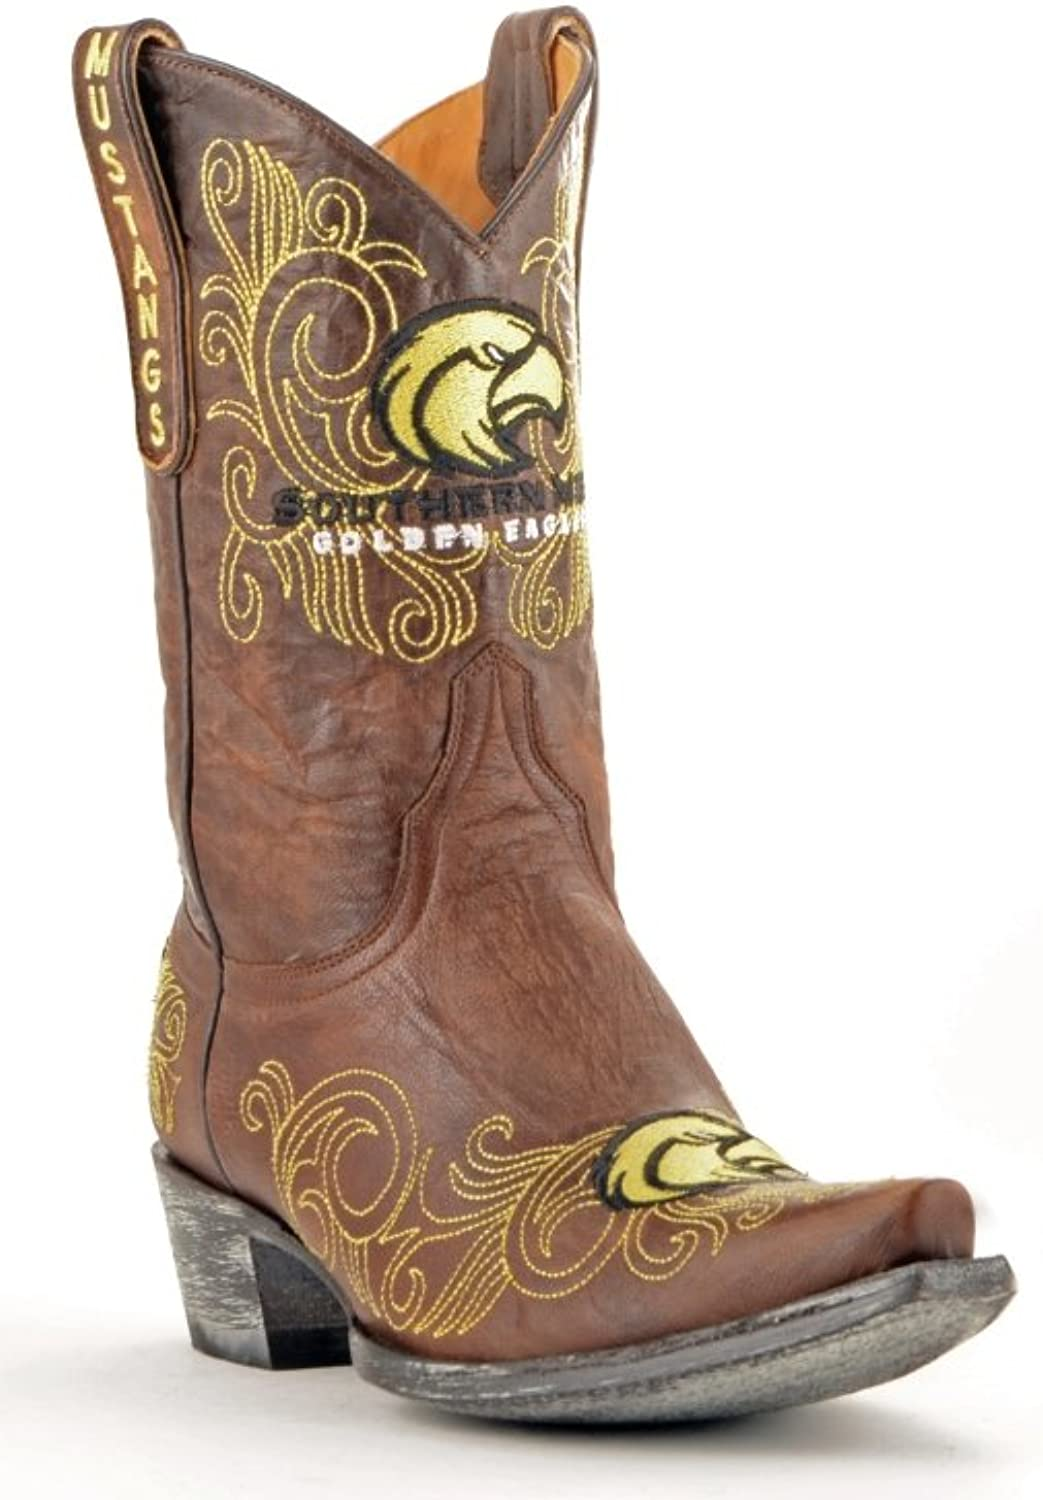 NCAA kvinnor Ladies 10 tum University of Southern Mississippi Gameday Gameday Gameday Boot  fabriksförsäljning